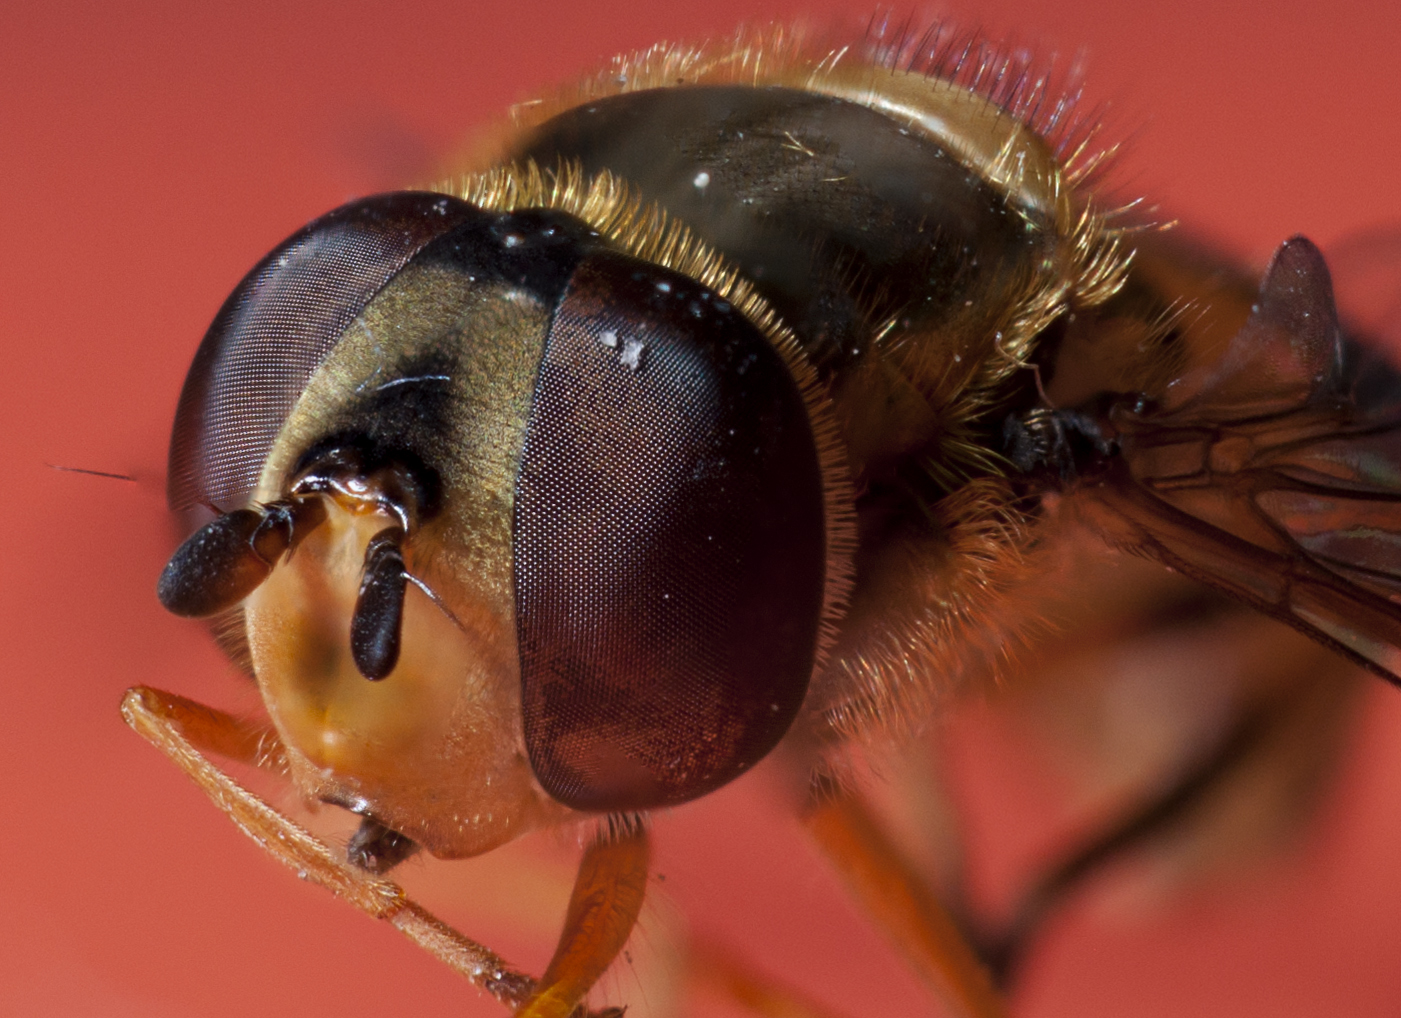 Focus Stack of Fly